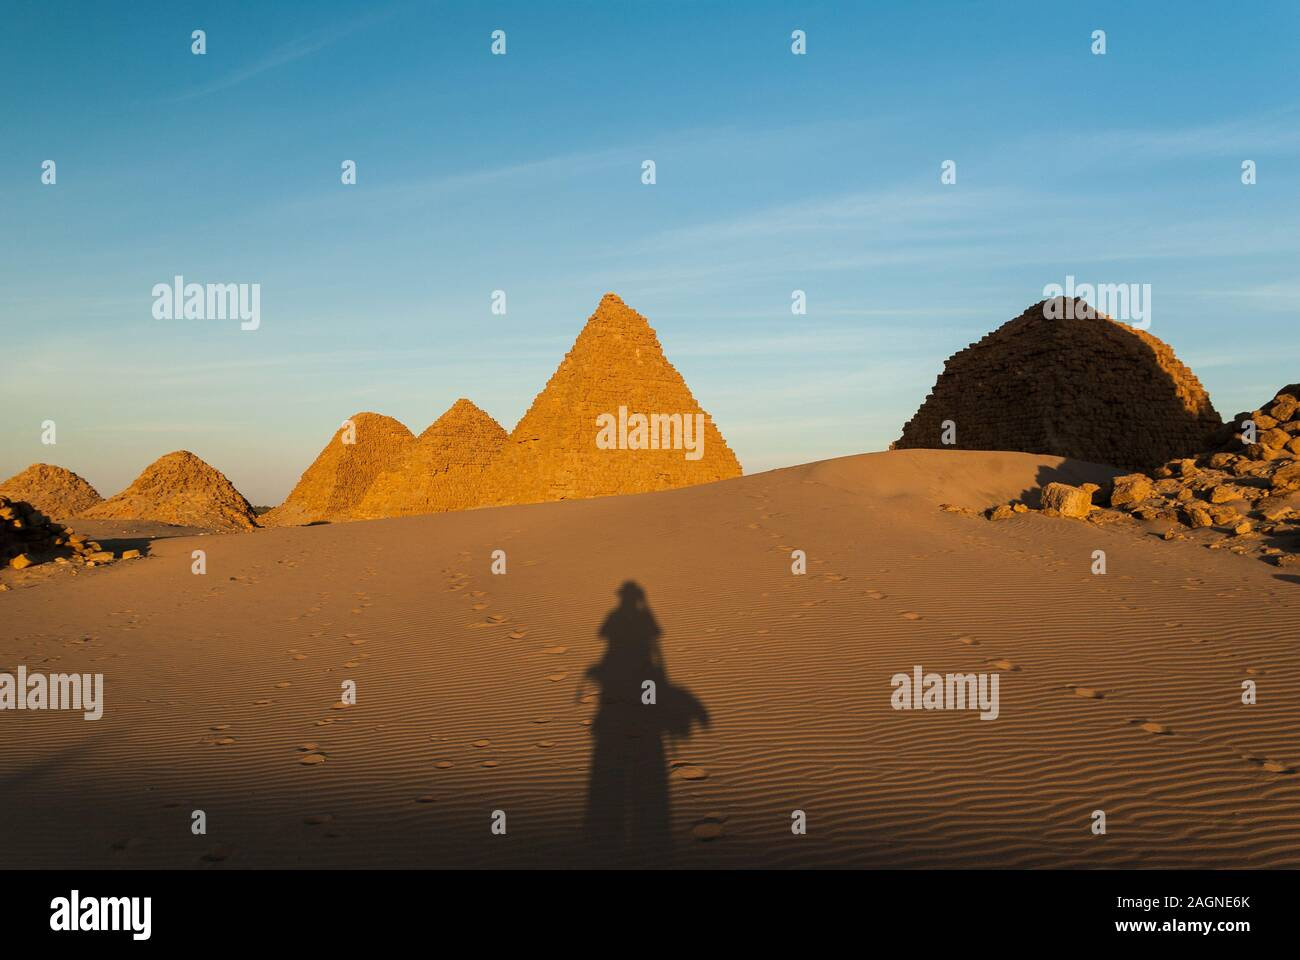 Pyramids, Royal Necropoiis, Nuri near Karima, northern Sudan Stock Photo